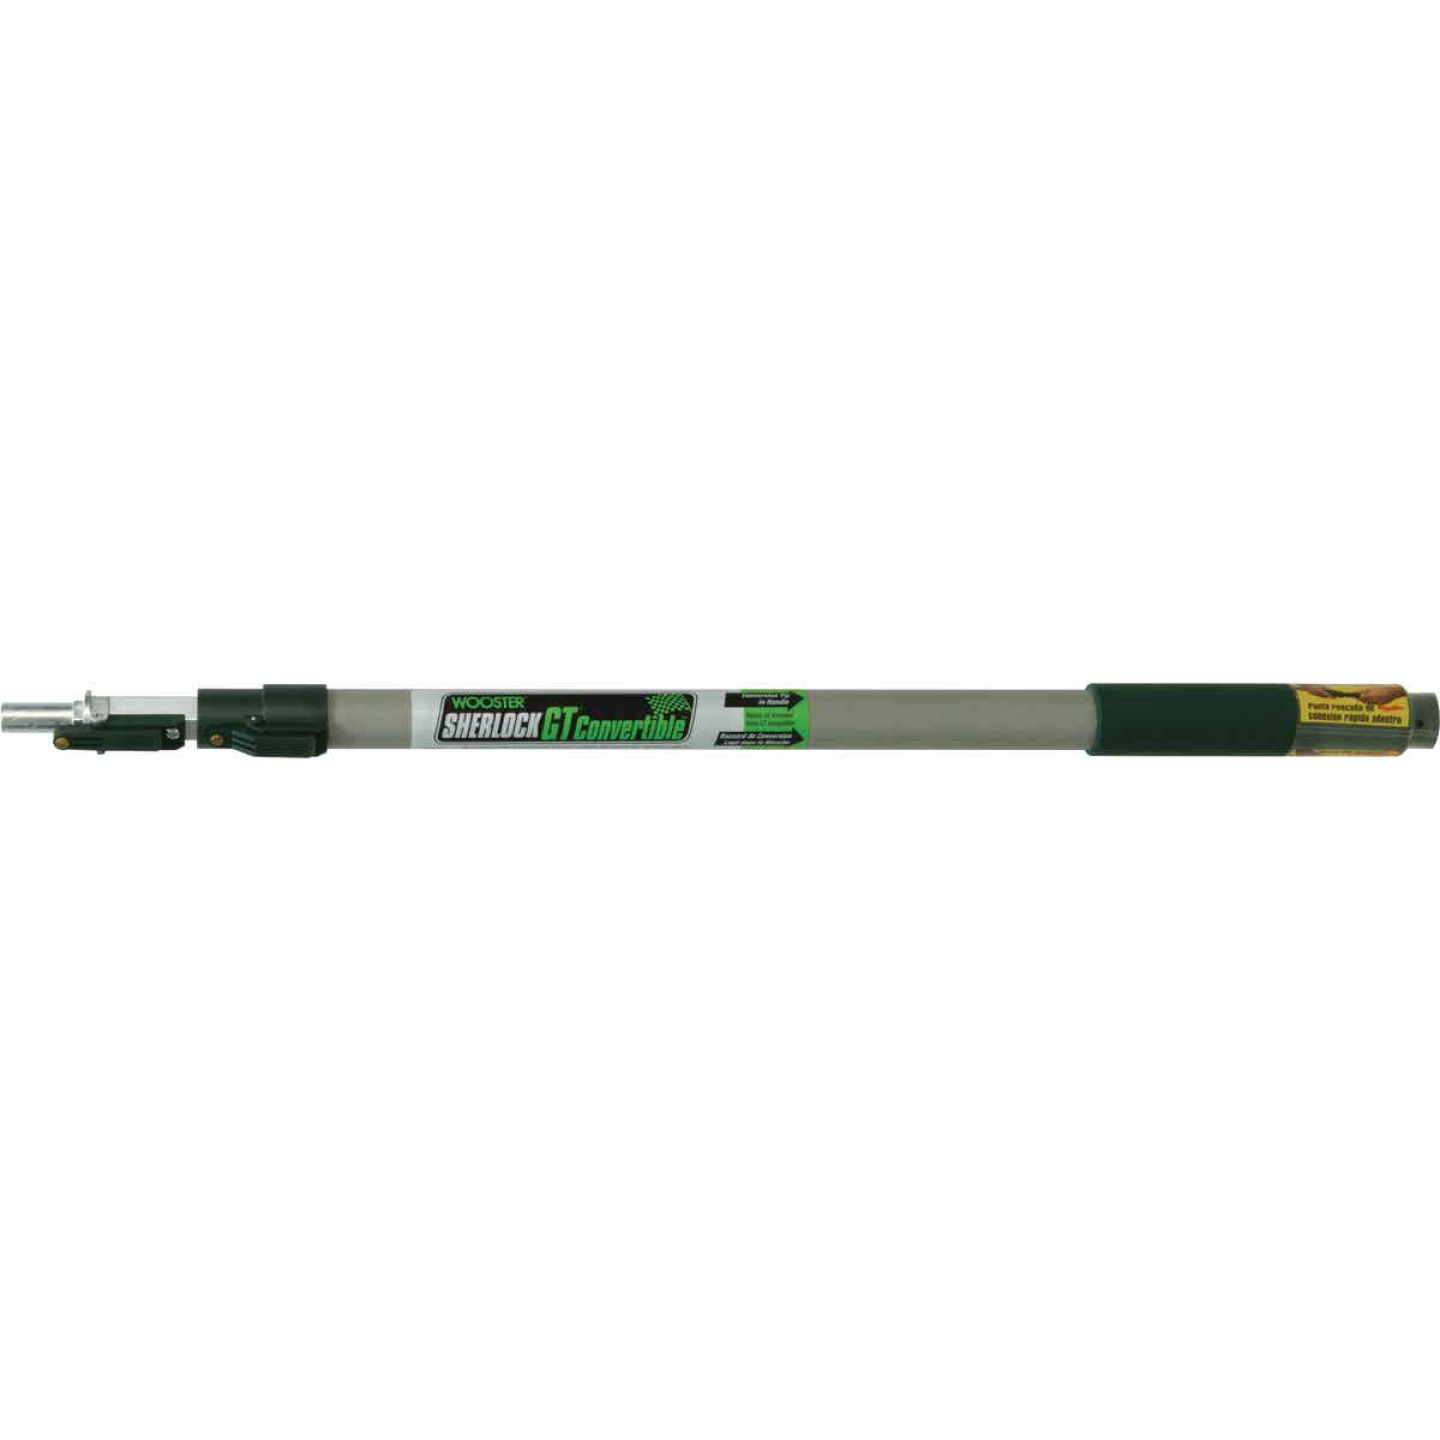 Wooster Sherlock GT 2 Ft. To 4 Ft. Convertible Extension Pole Image 1